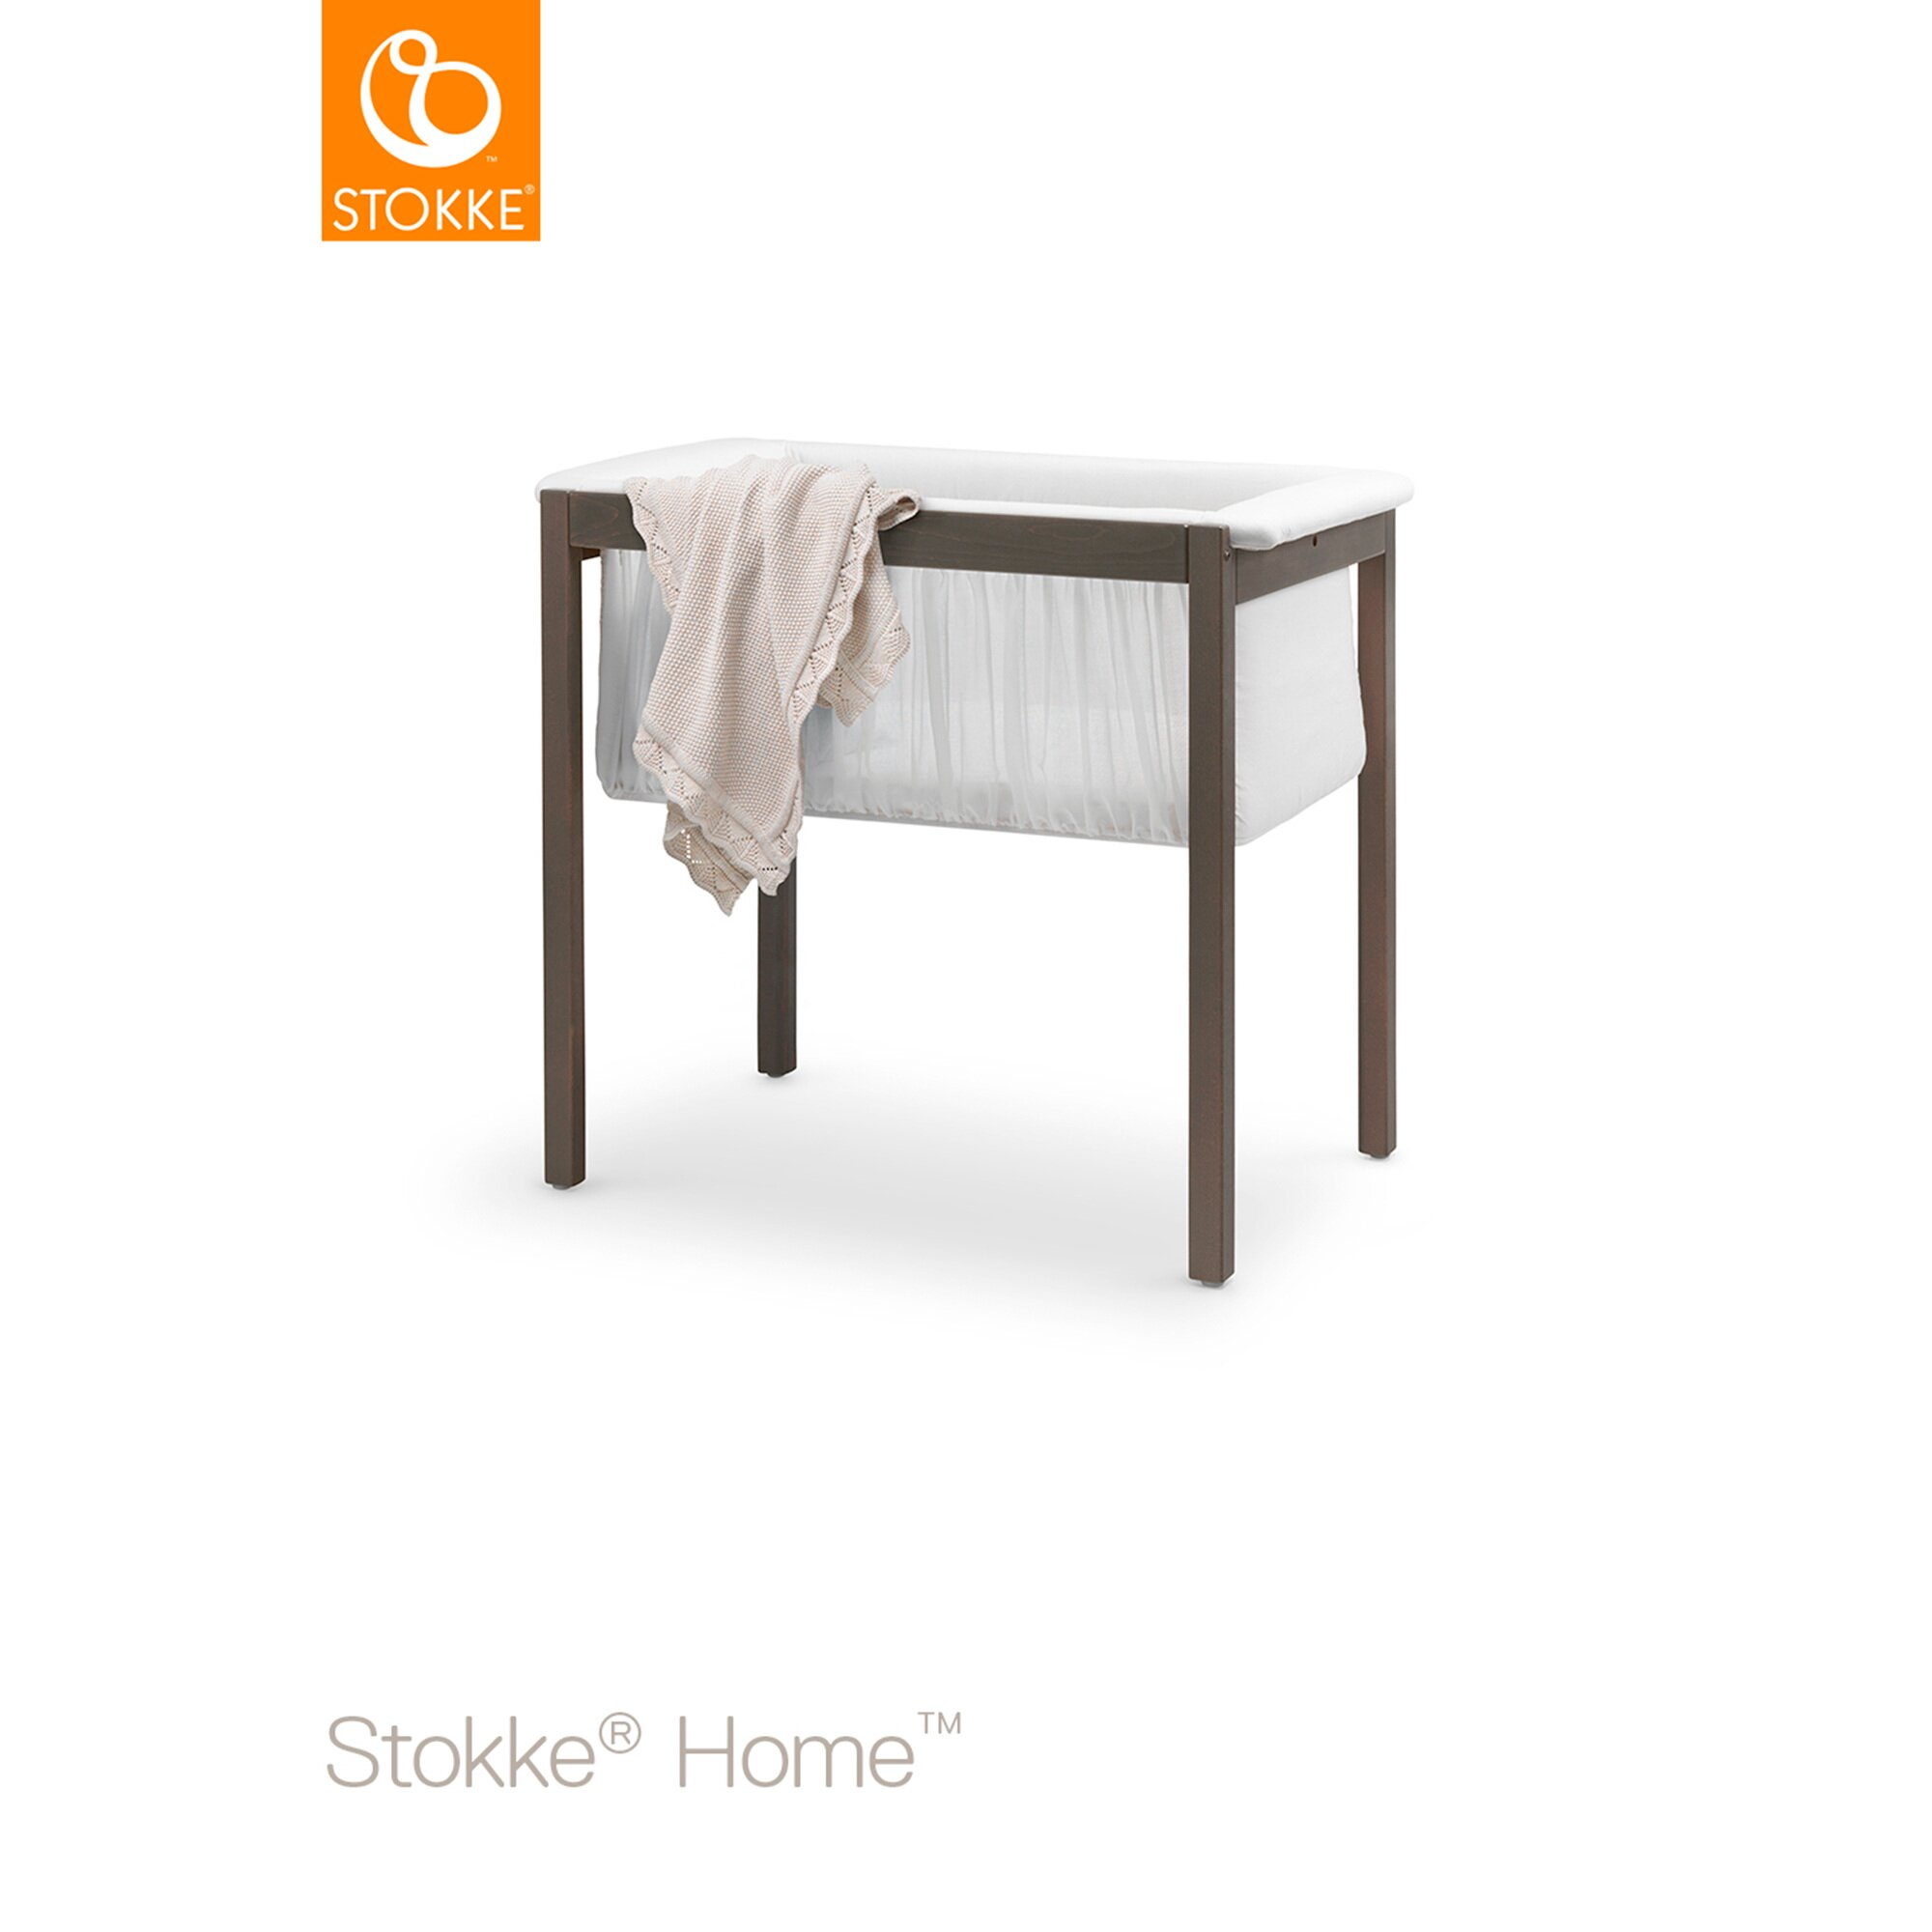 home-cradle-babywiege